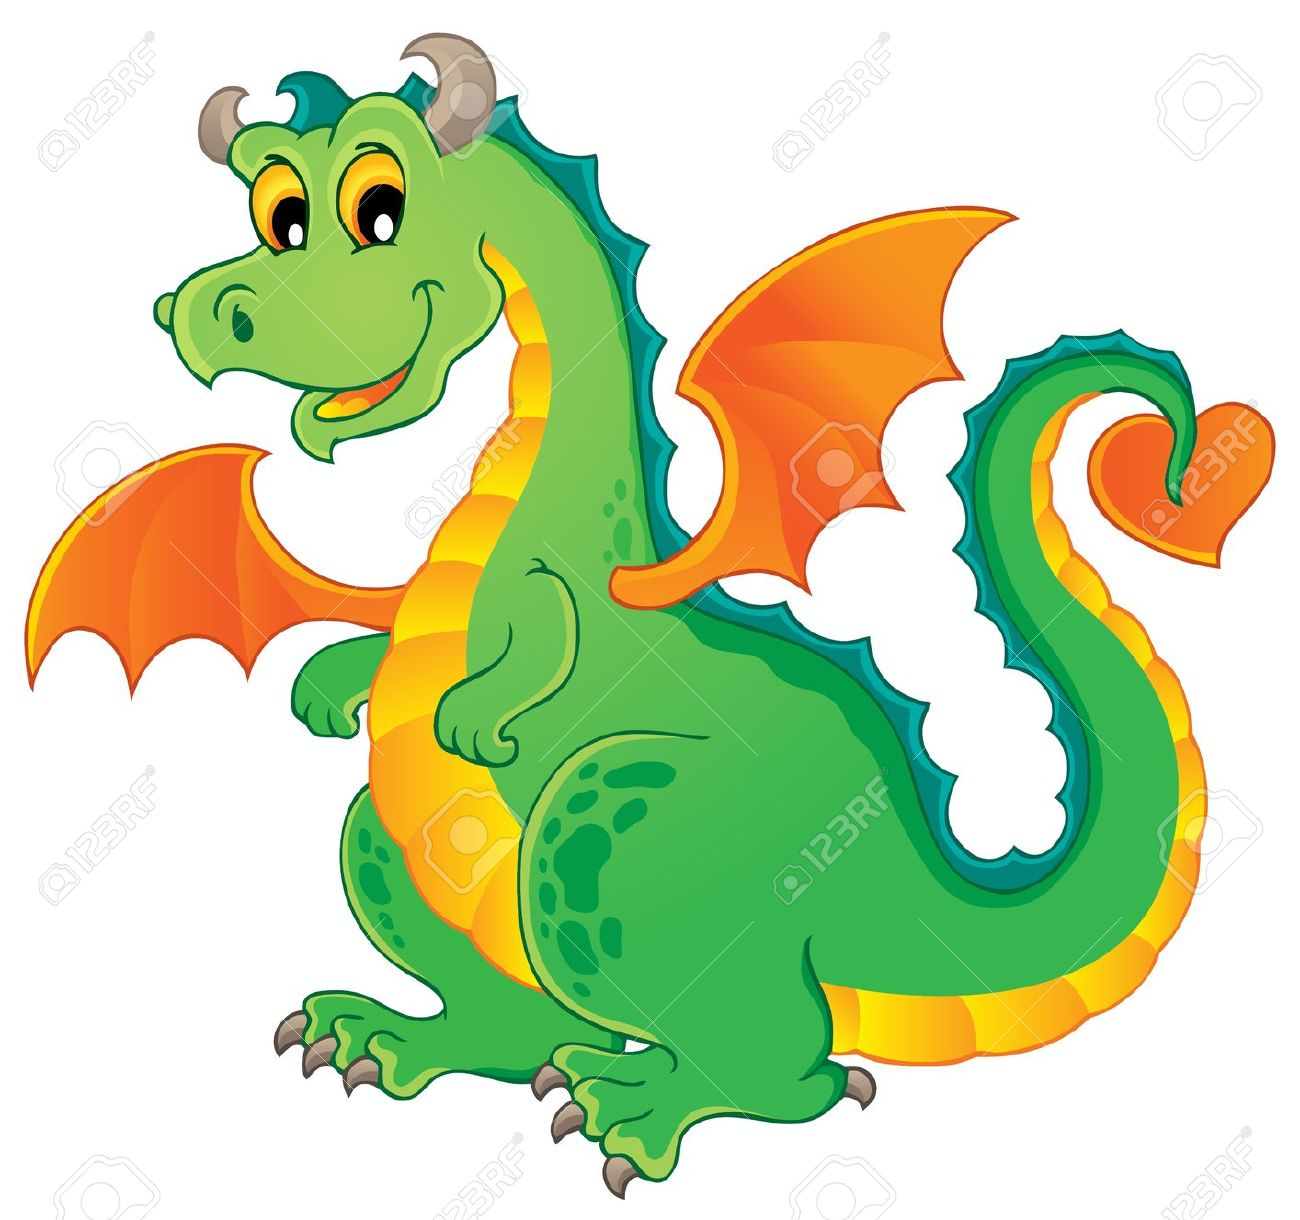 Dragons clipart graphic freeuse 64+ Dragons Clipart | ClipartLook graphic freeuse